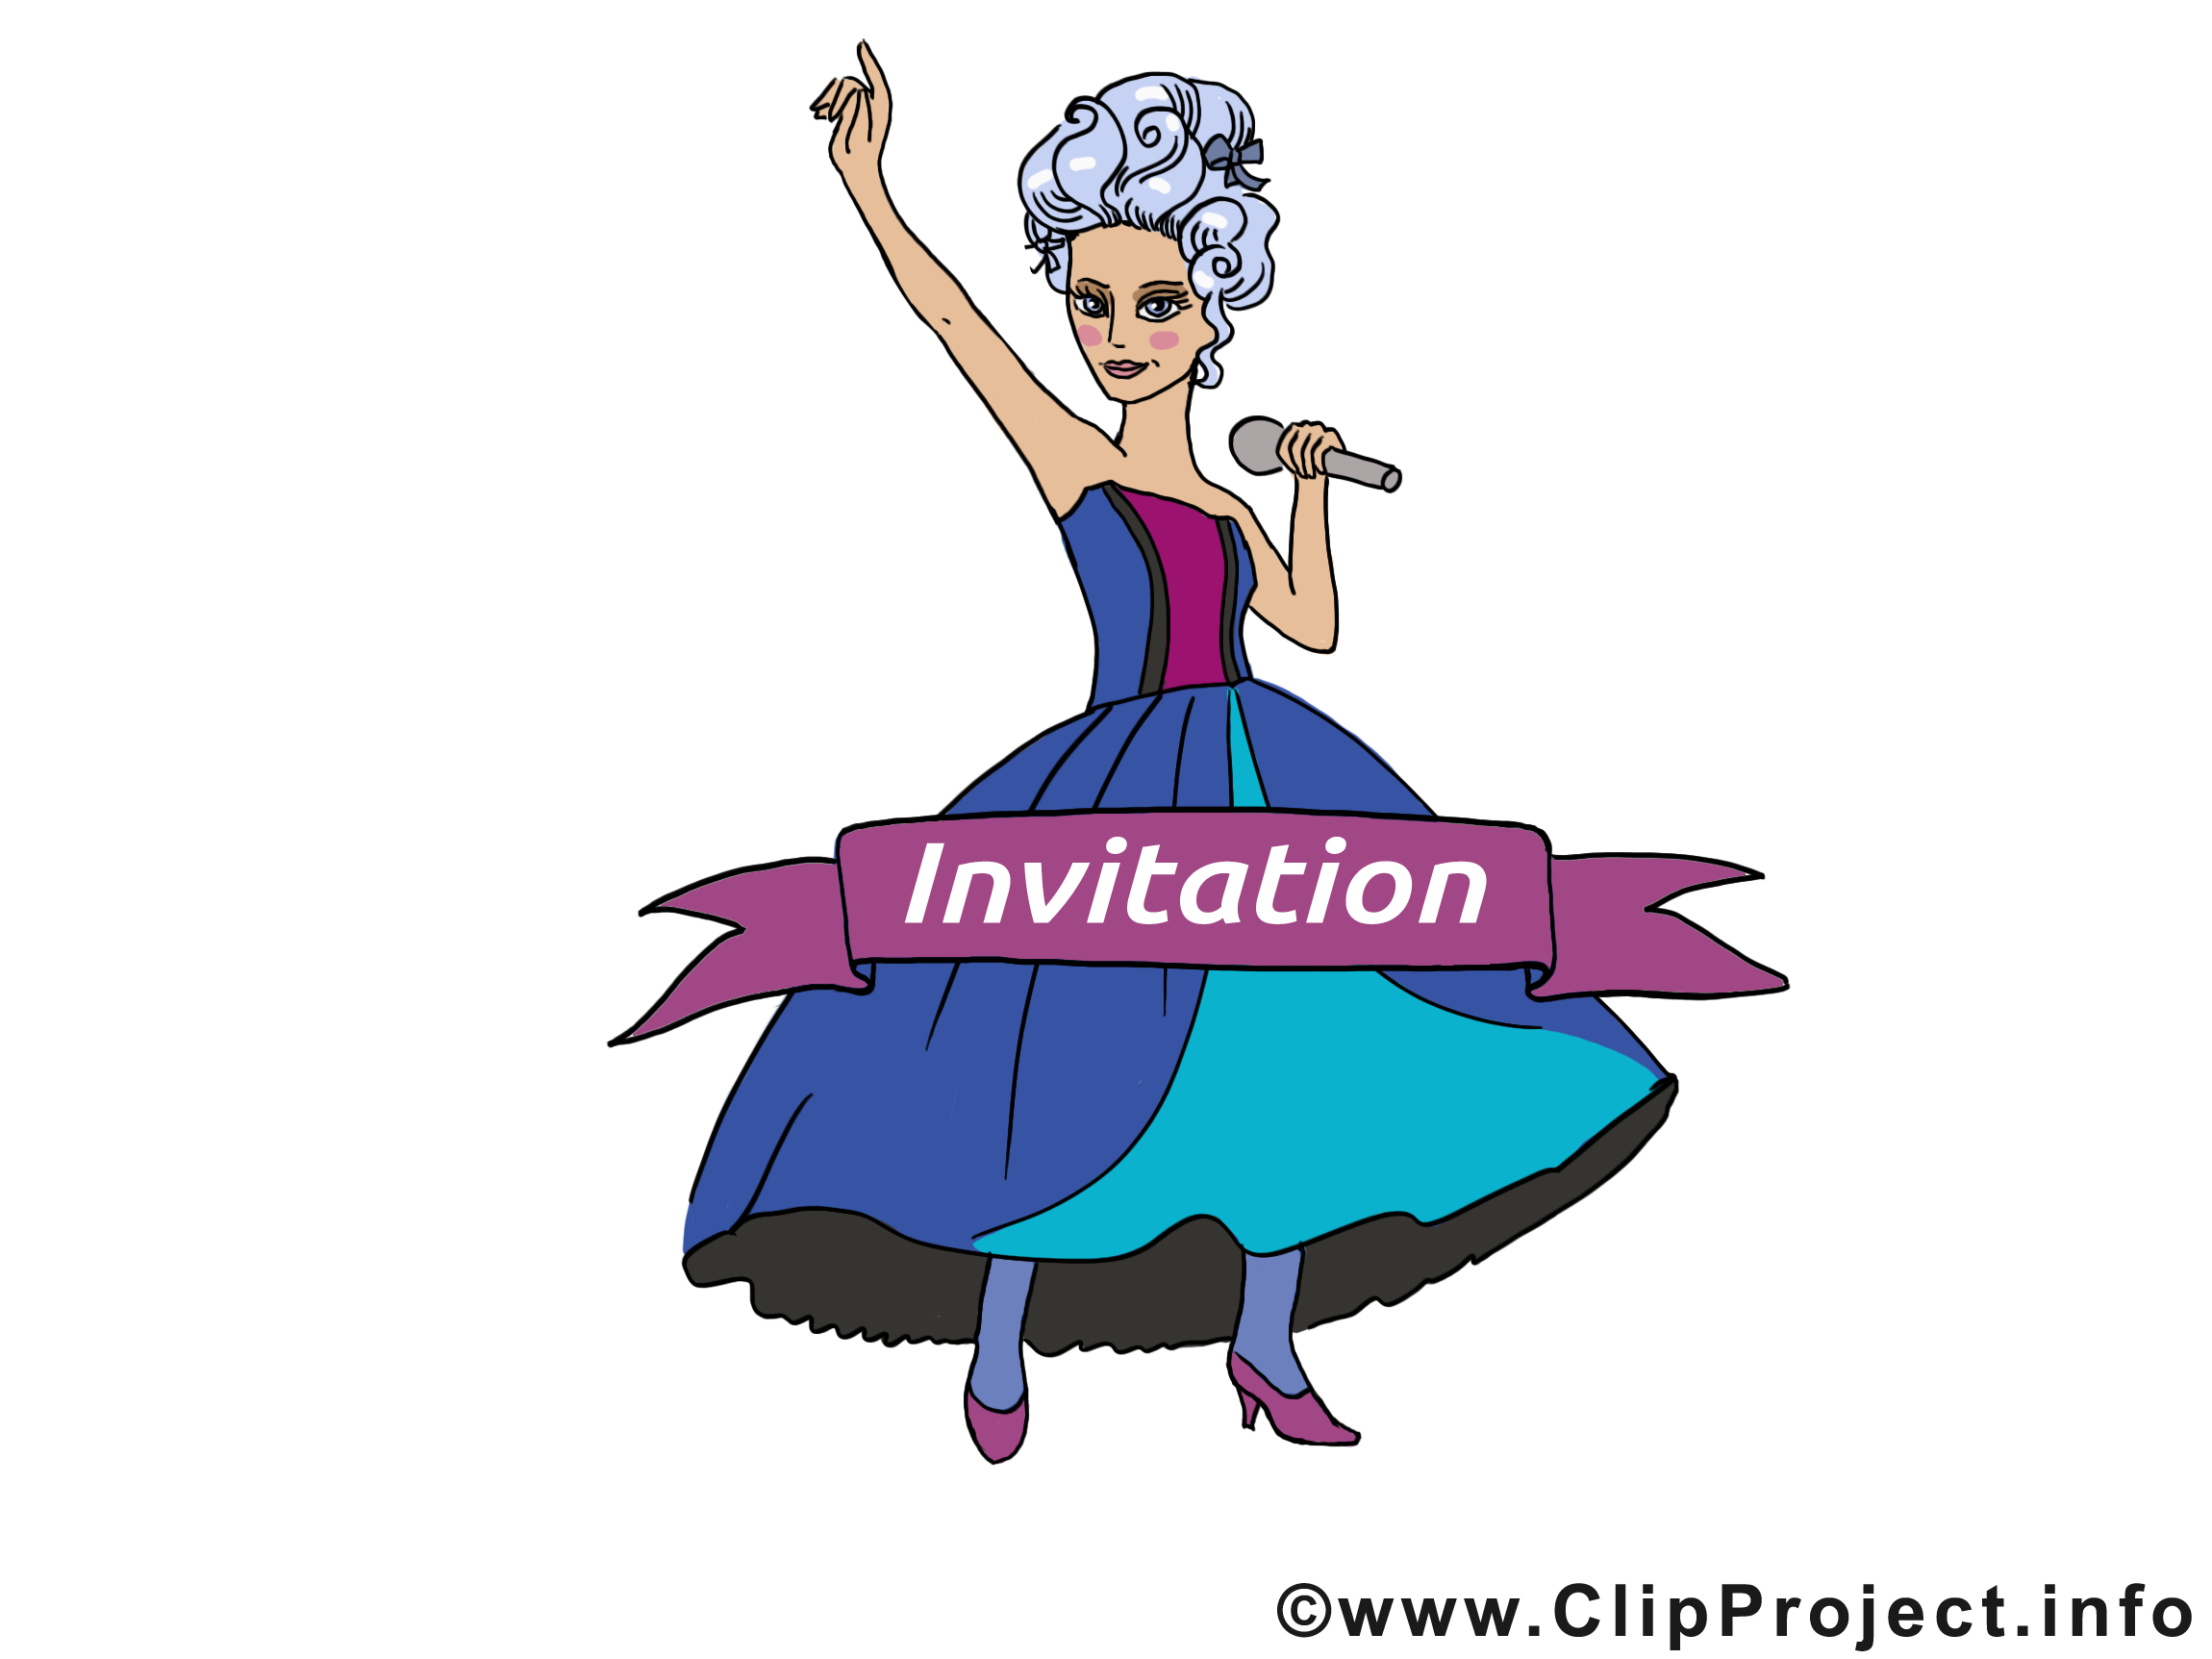 Chanteuse clip arts gratuits - Invitation illustrations